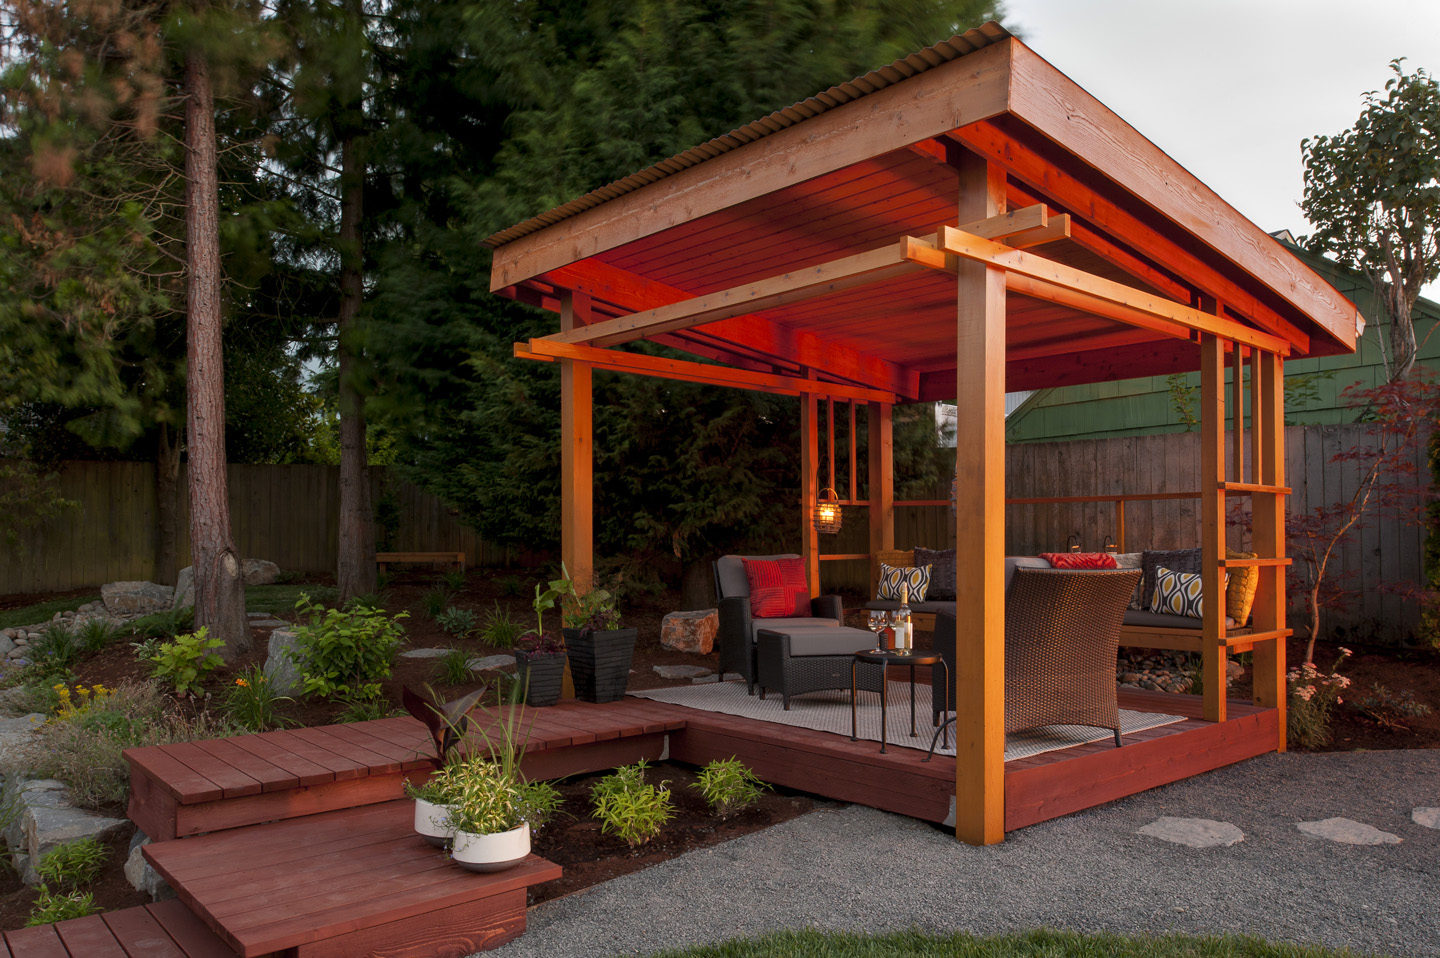 Lean-To Structure in Landscapes